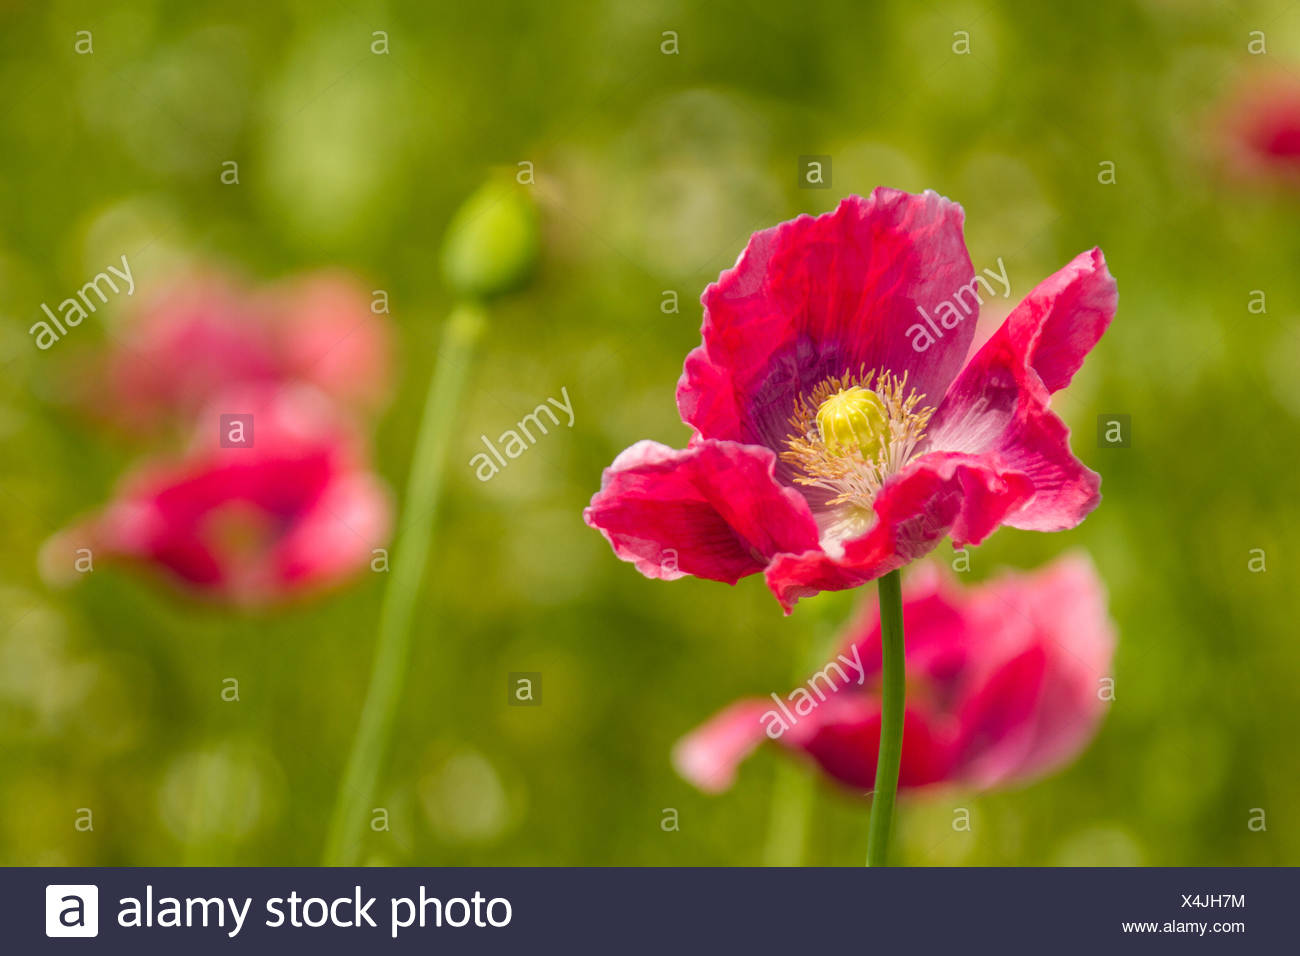 Opium poppy, Papaver somniferum Stock Photo